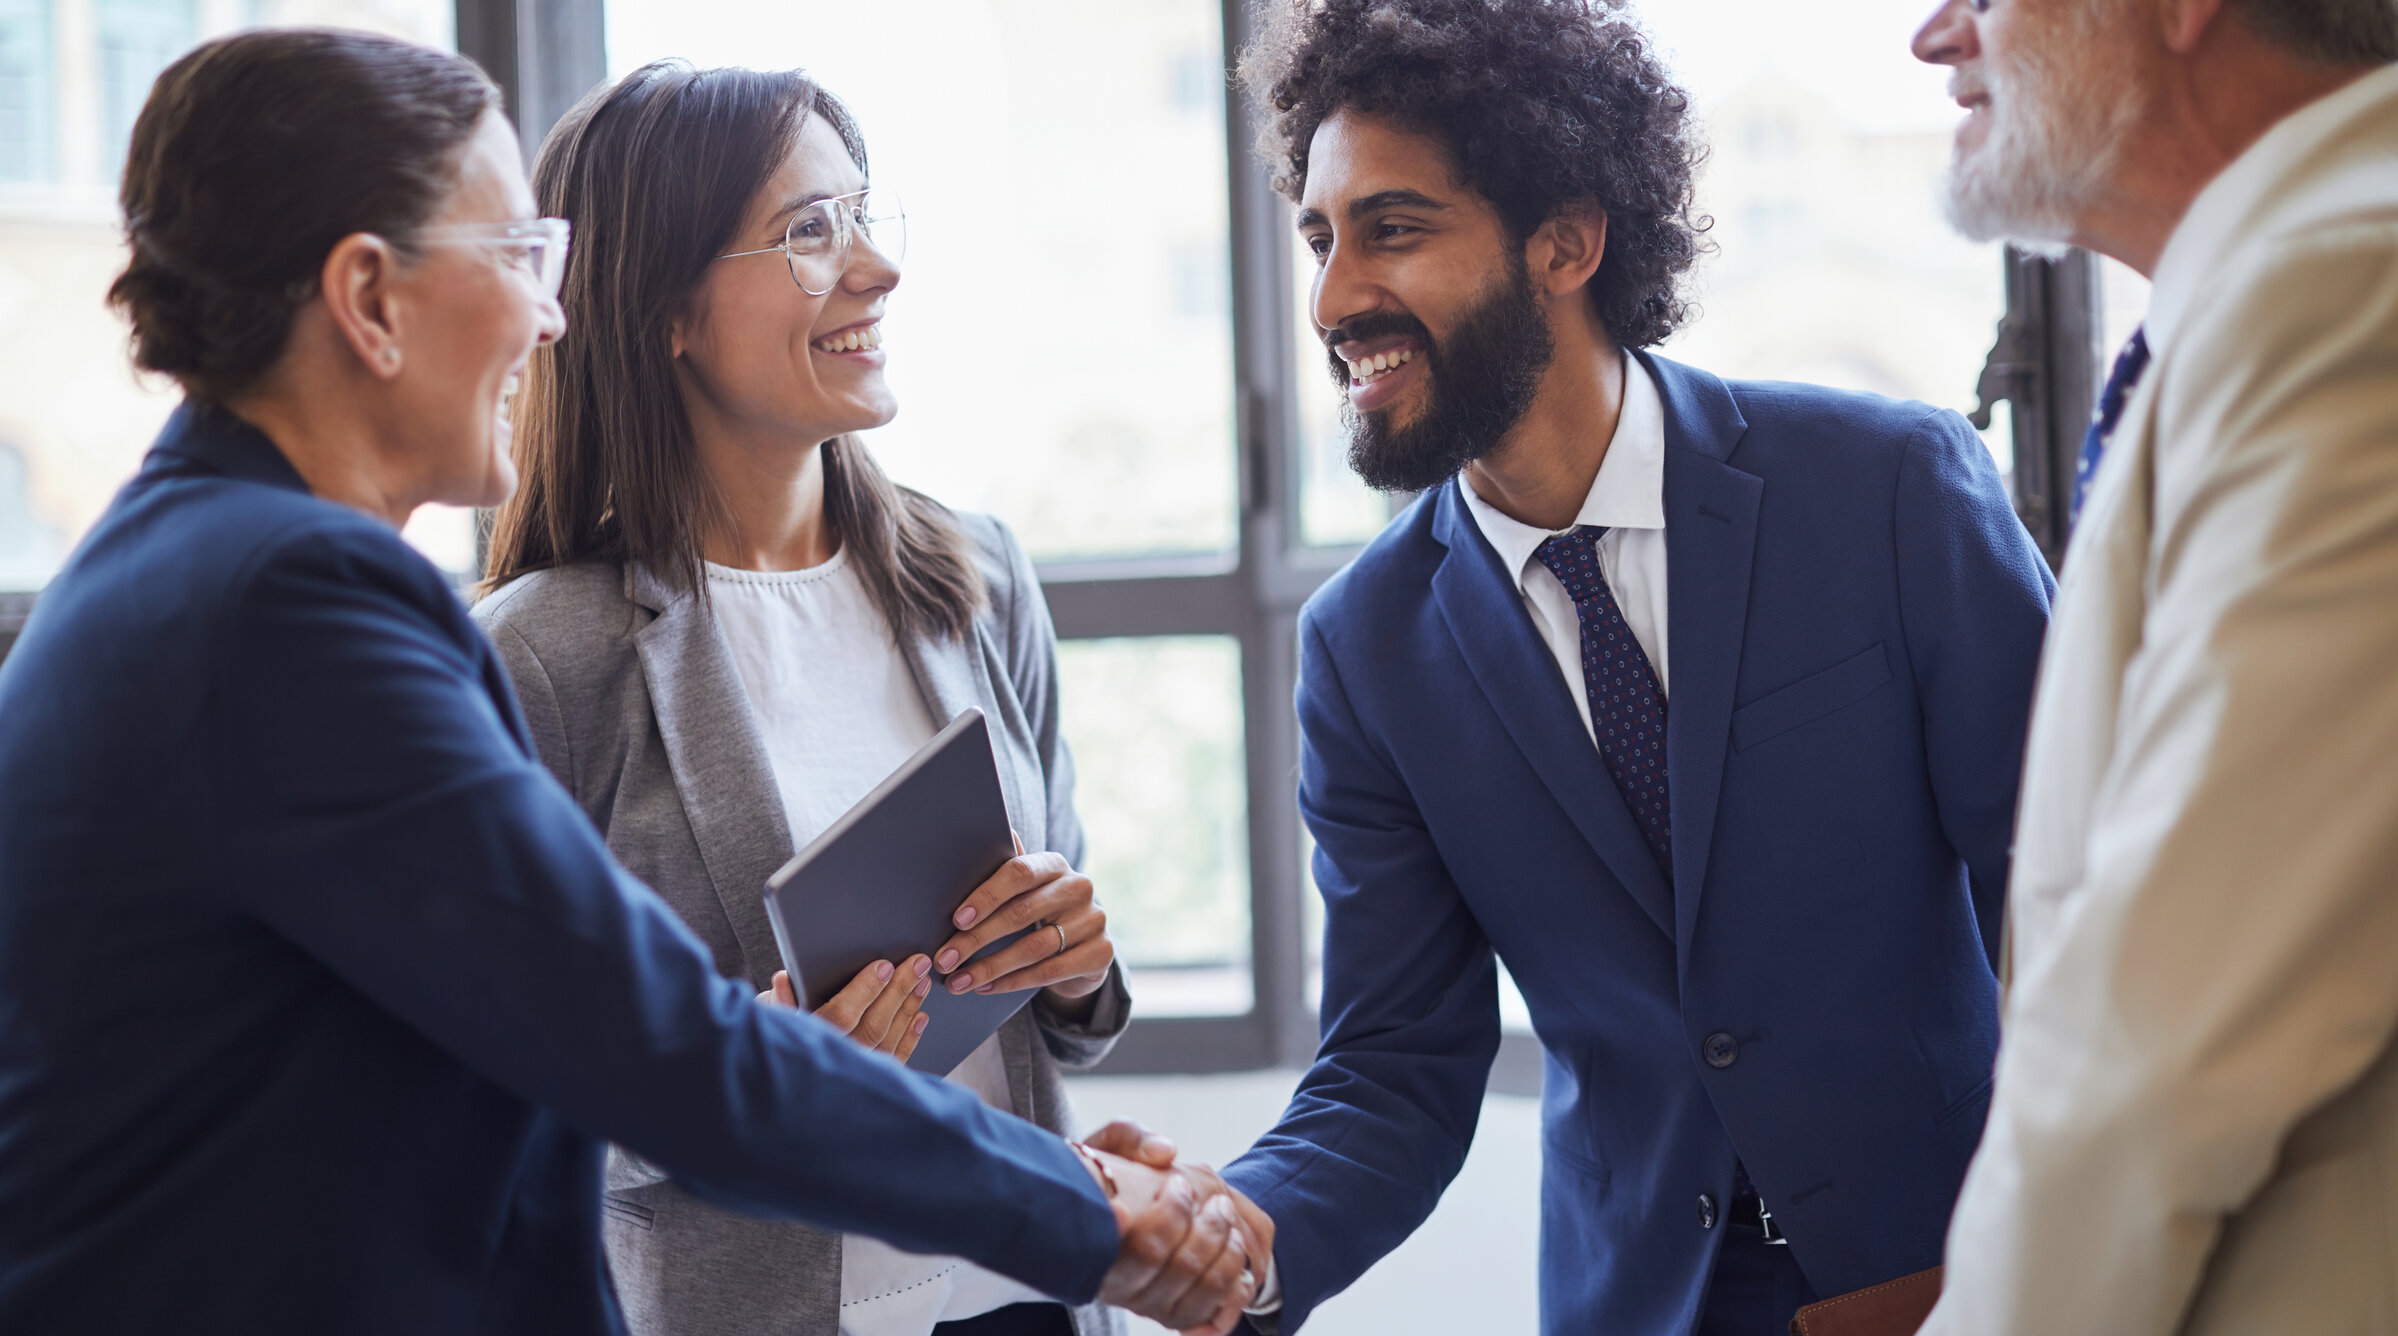 A man and woman shaking hands as part of a group in a business setting.